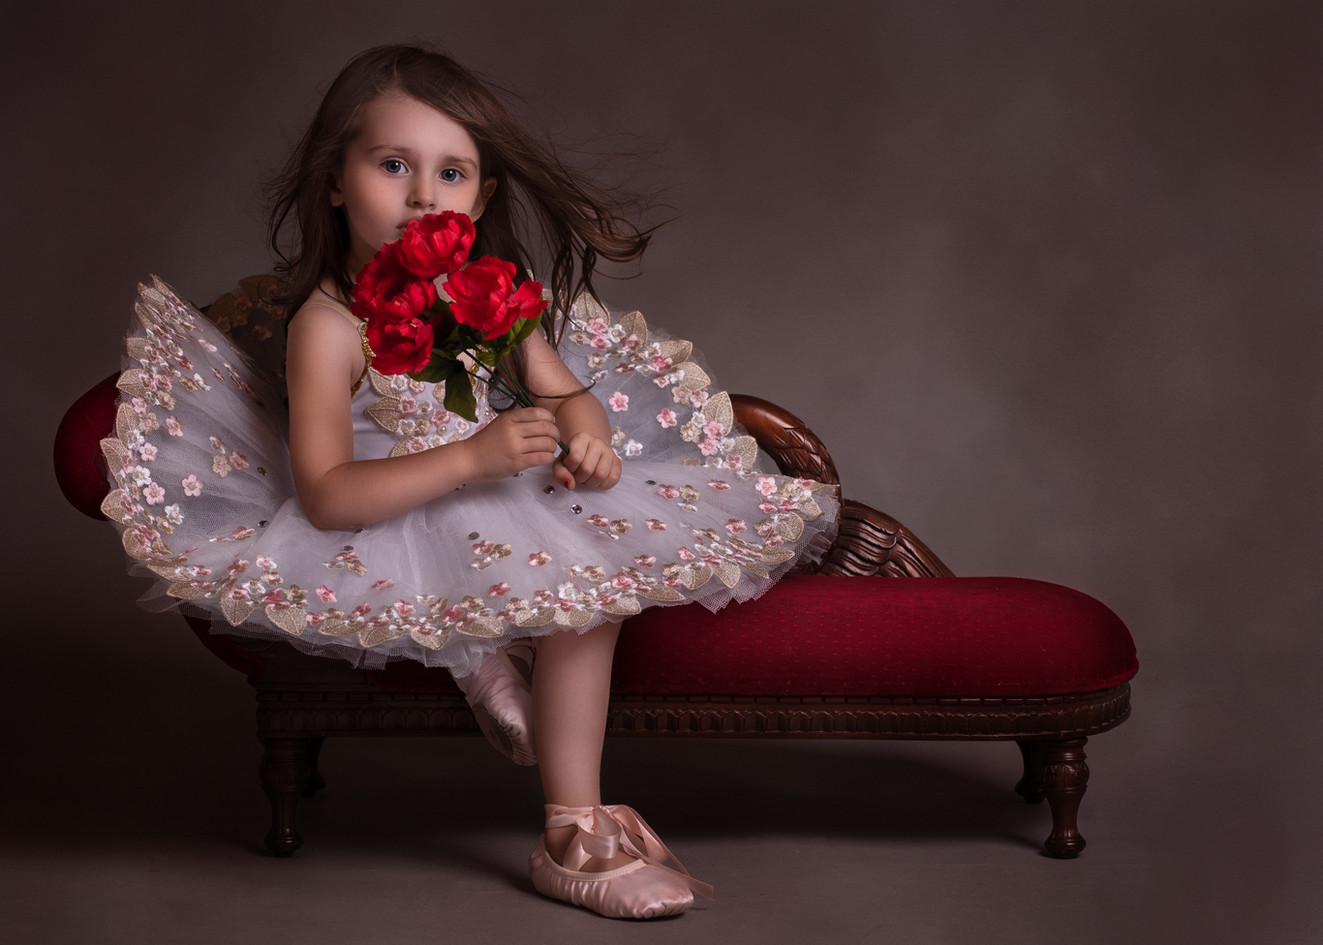 Ballerina with a Bouquet of Roses